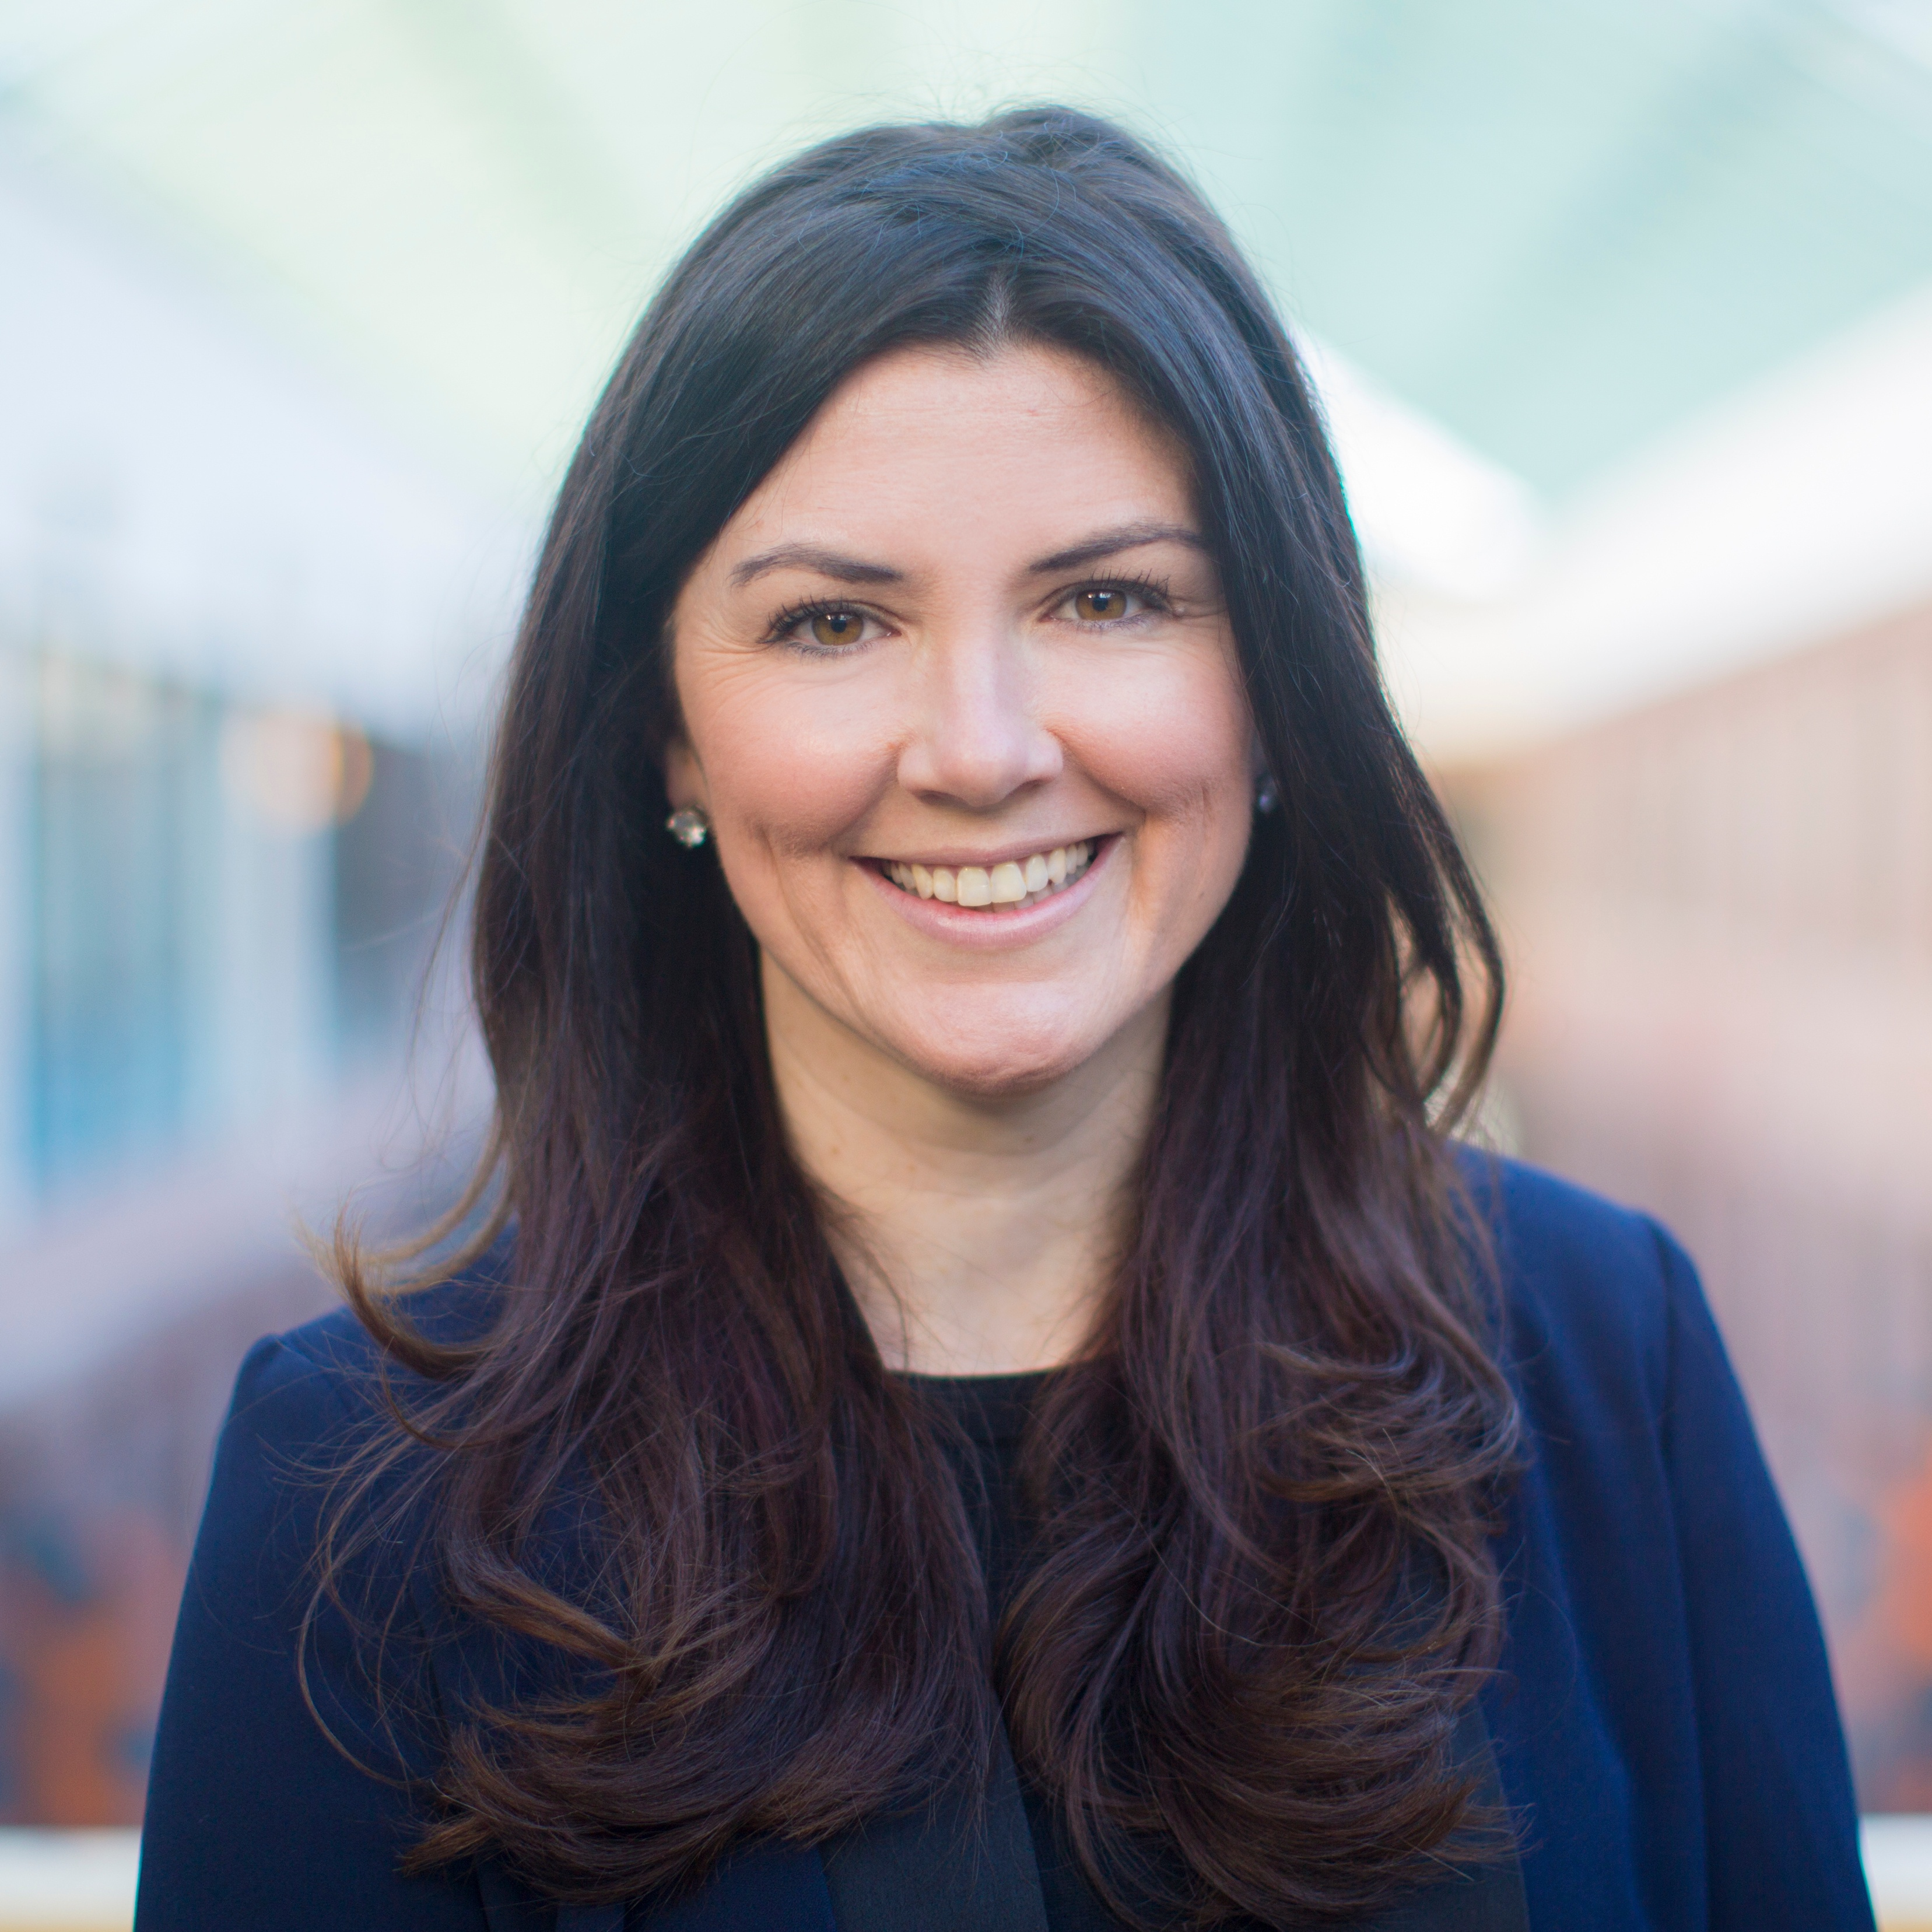 Katie Burke Becomes HubSpot's Chief People Officer